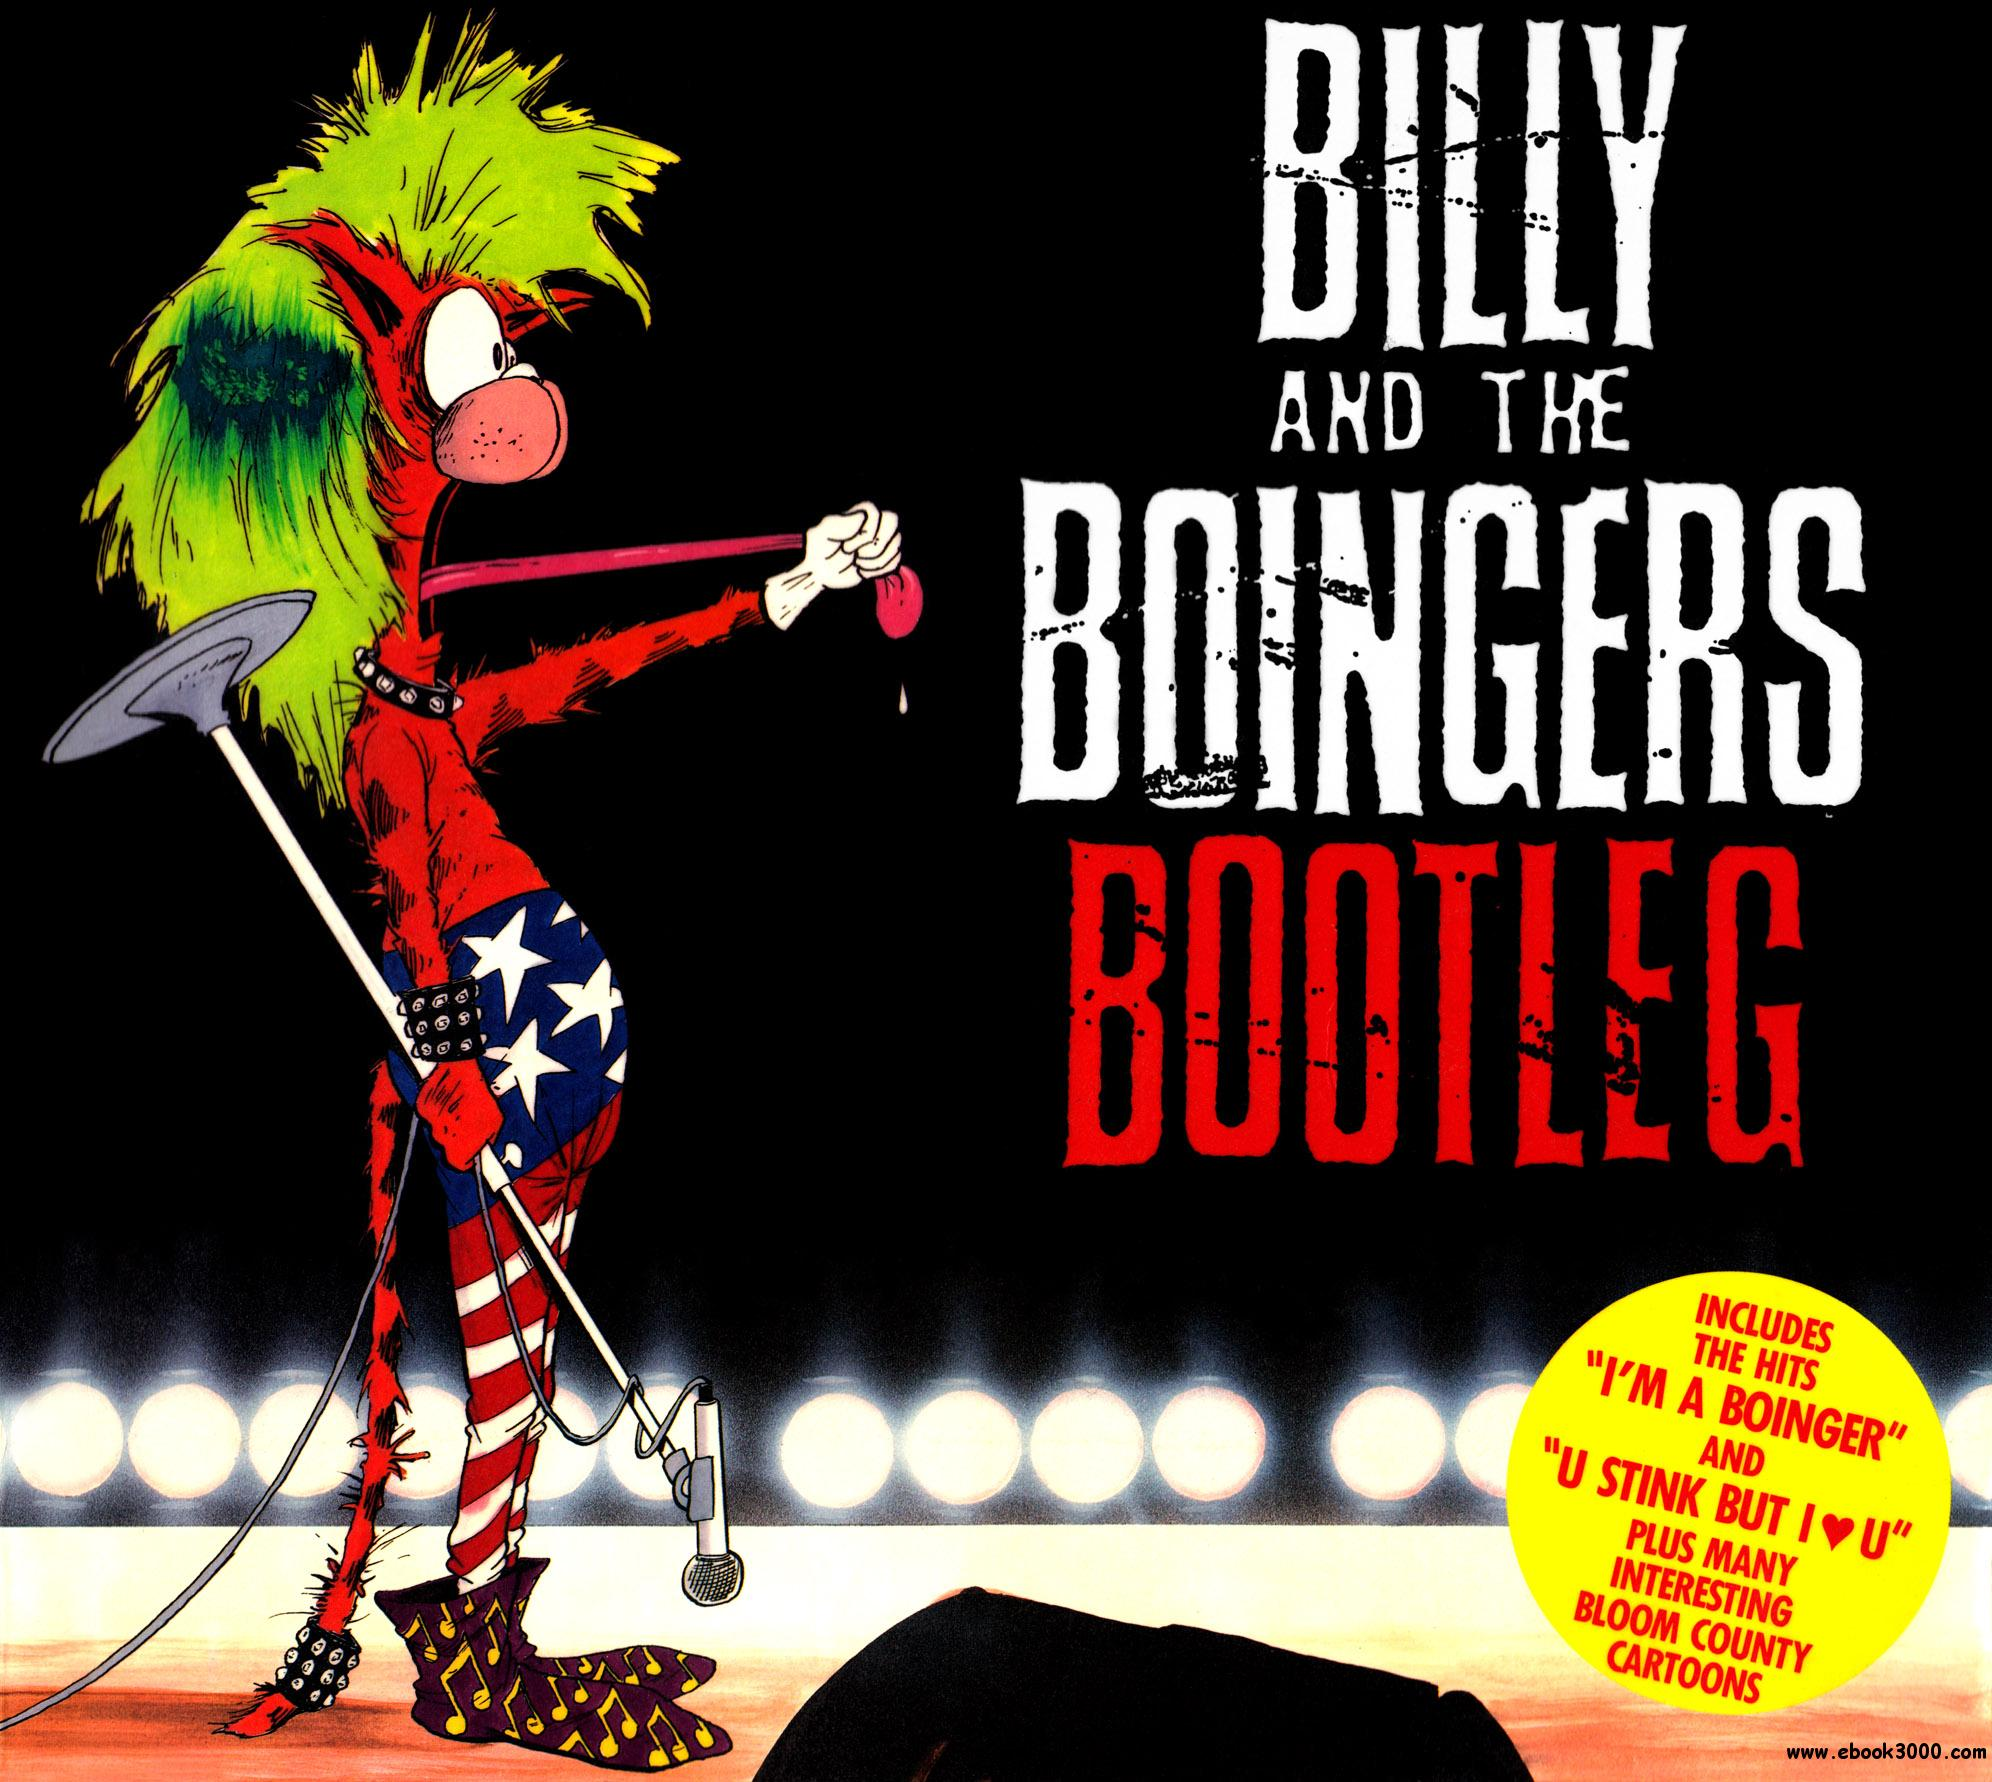 Billy and the Boingers Bootleg - Bloom County (1987) free download